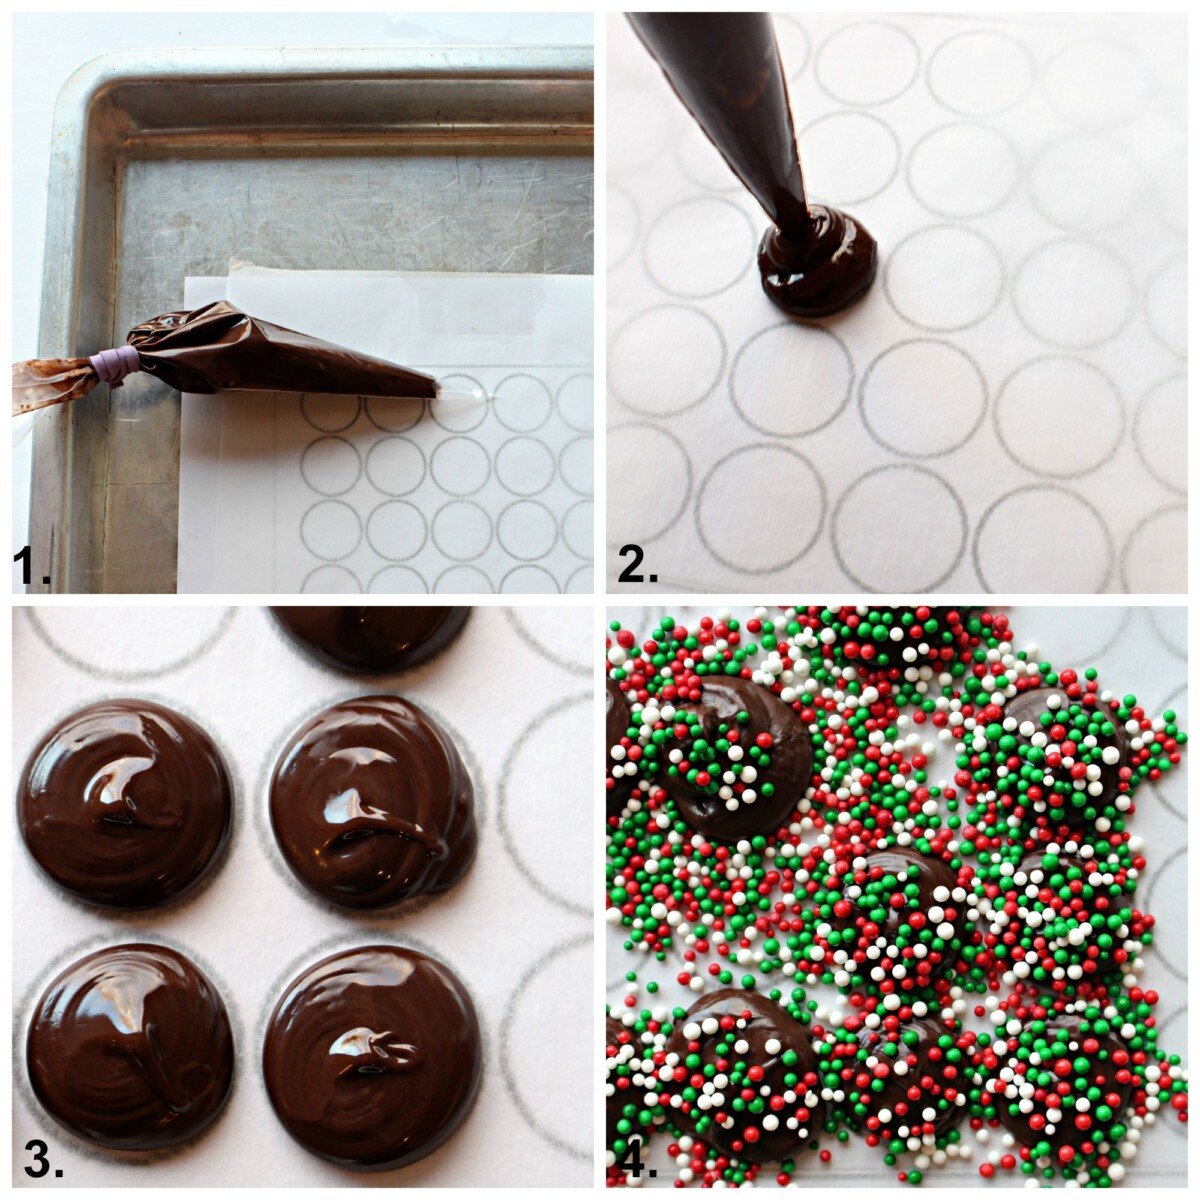 Step by step instructions piping chocolate circles and adding sprinkles.